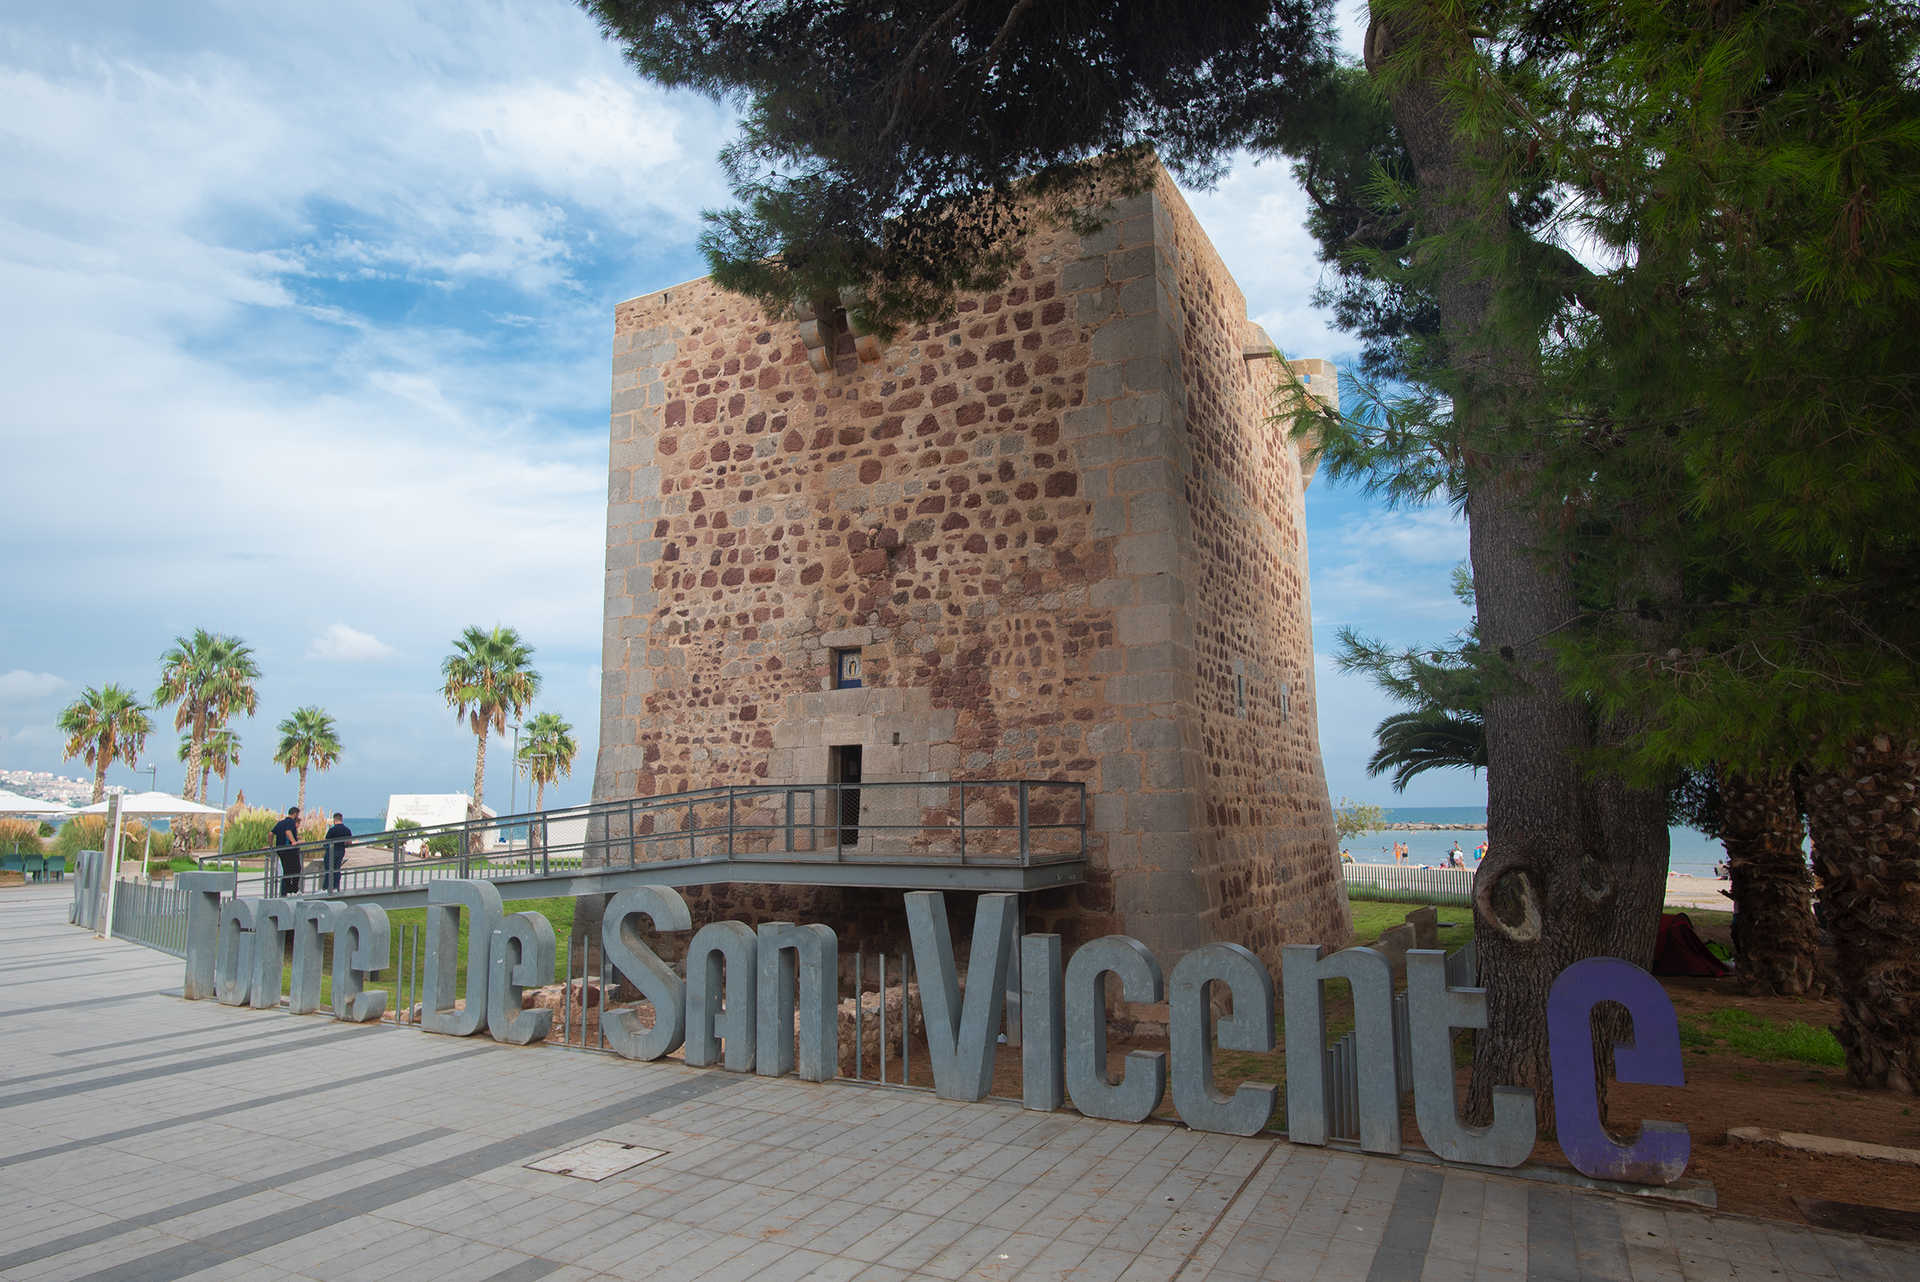 INTERPRETATION CENTRE TORRE DE SANT VICENT